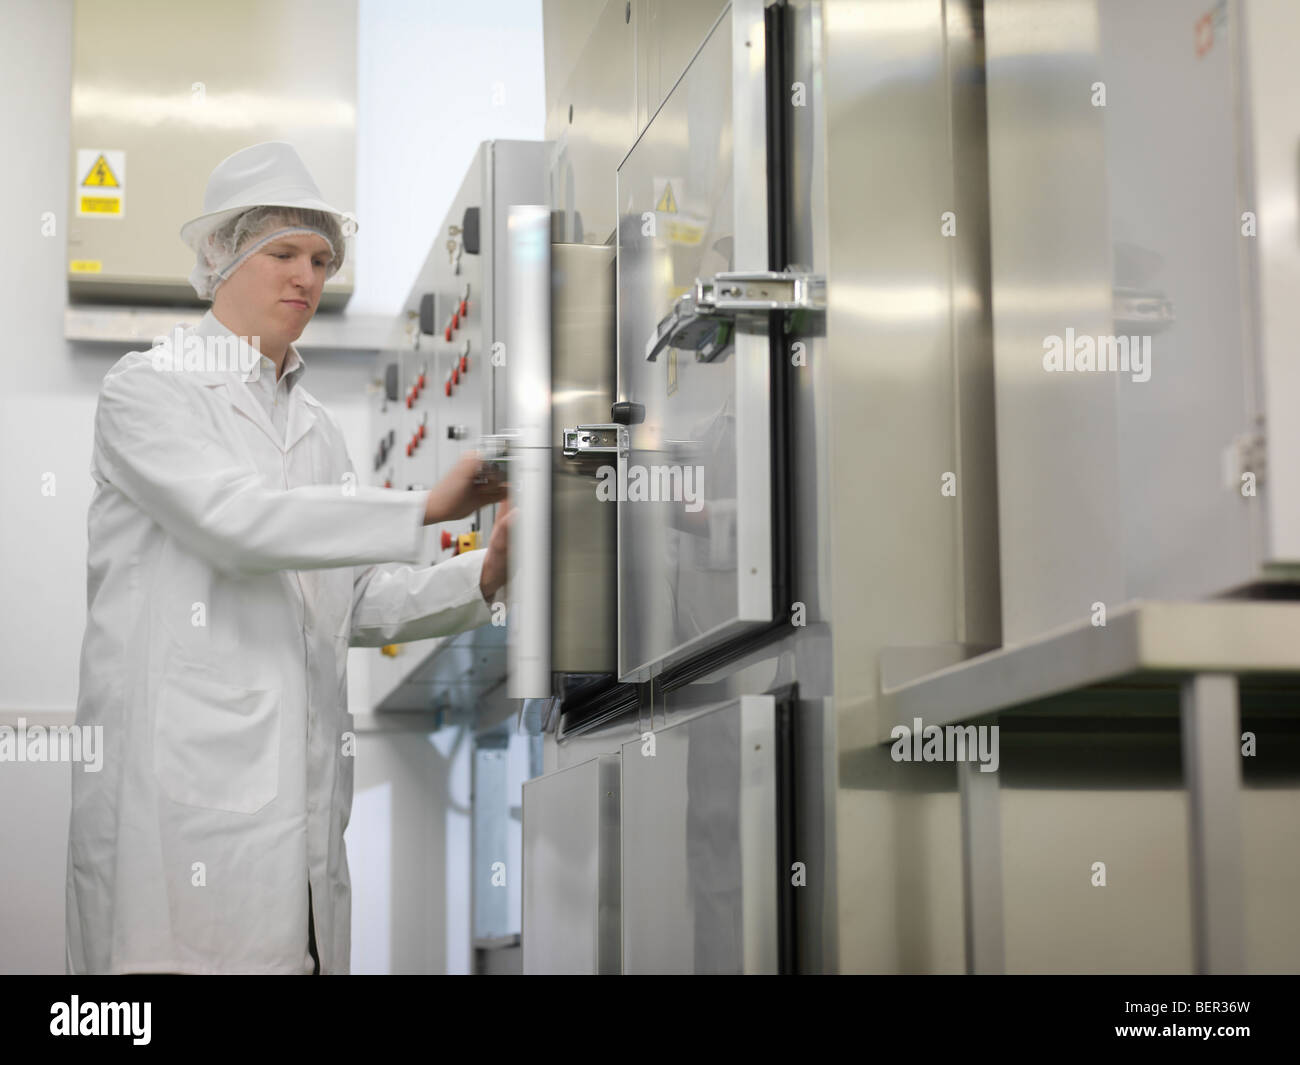 Food Worker At Control Panel - Stock Image